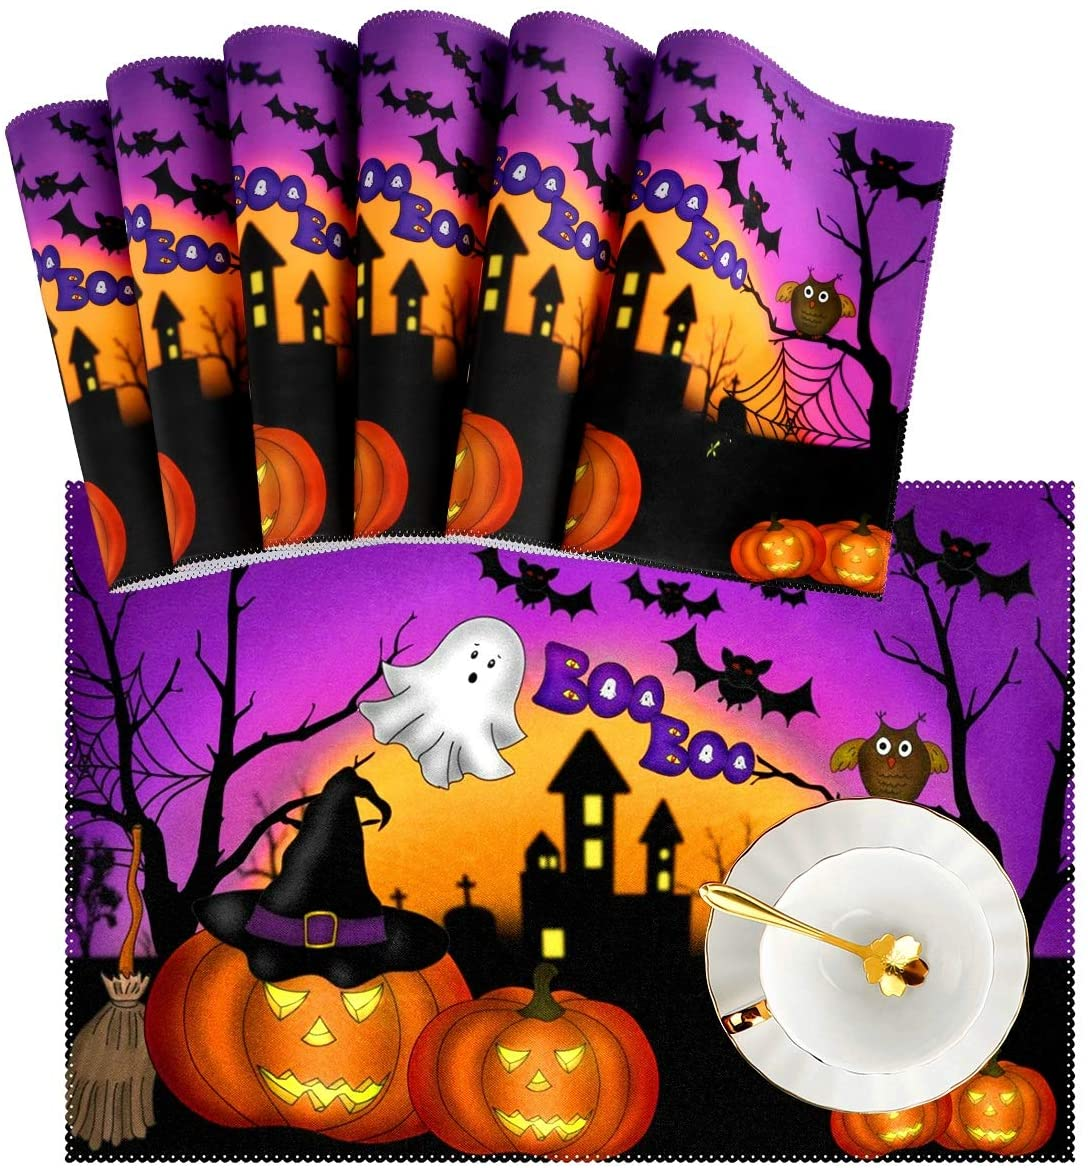 Naanle Halloween Placemat Set of 6, Ghost Owl Pumpkin Heat-Resistant Washable Table Place Mats for Kitchen Dining Table Decoration